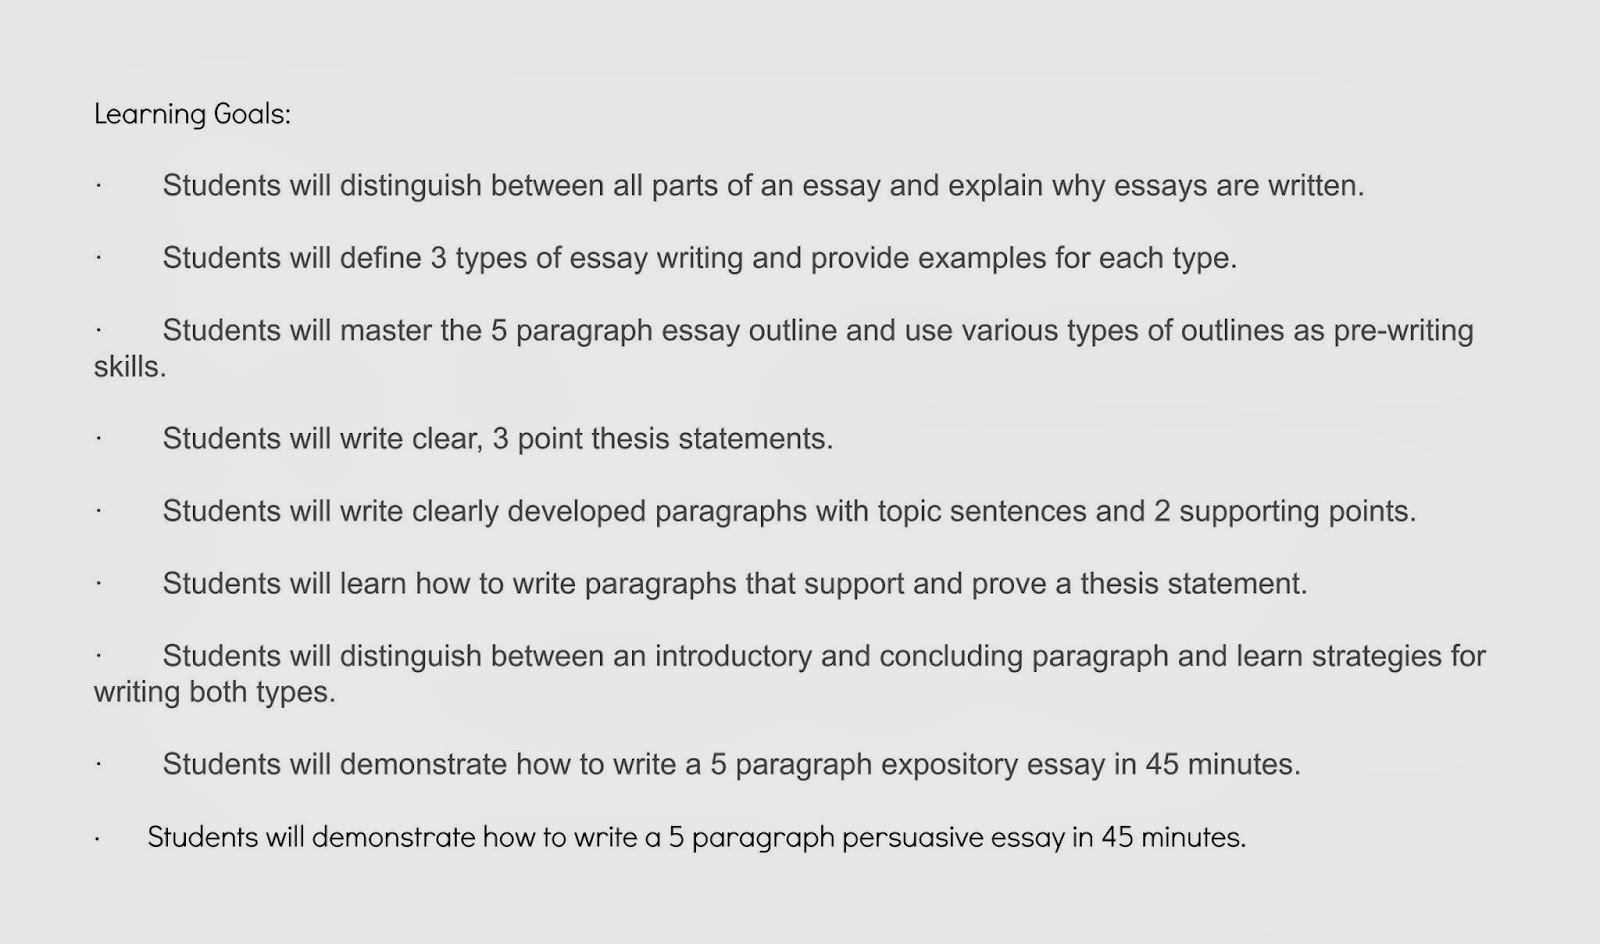 guide to writing a basic essay college essays college application  easy essays com easy essays com easy essay oglasi easy essay adventures jude bridgeway academy easy